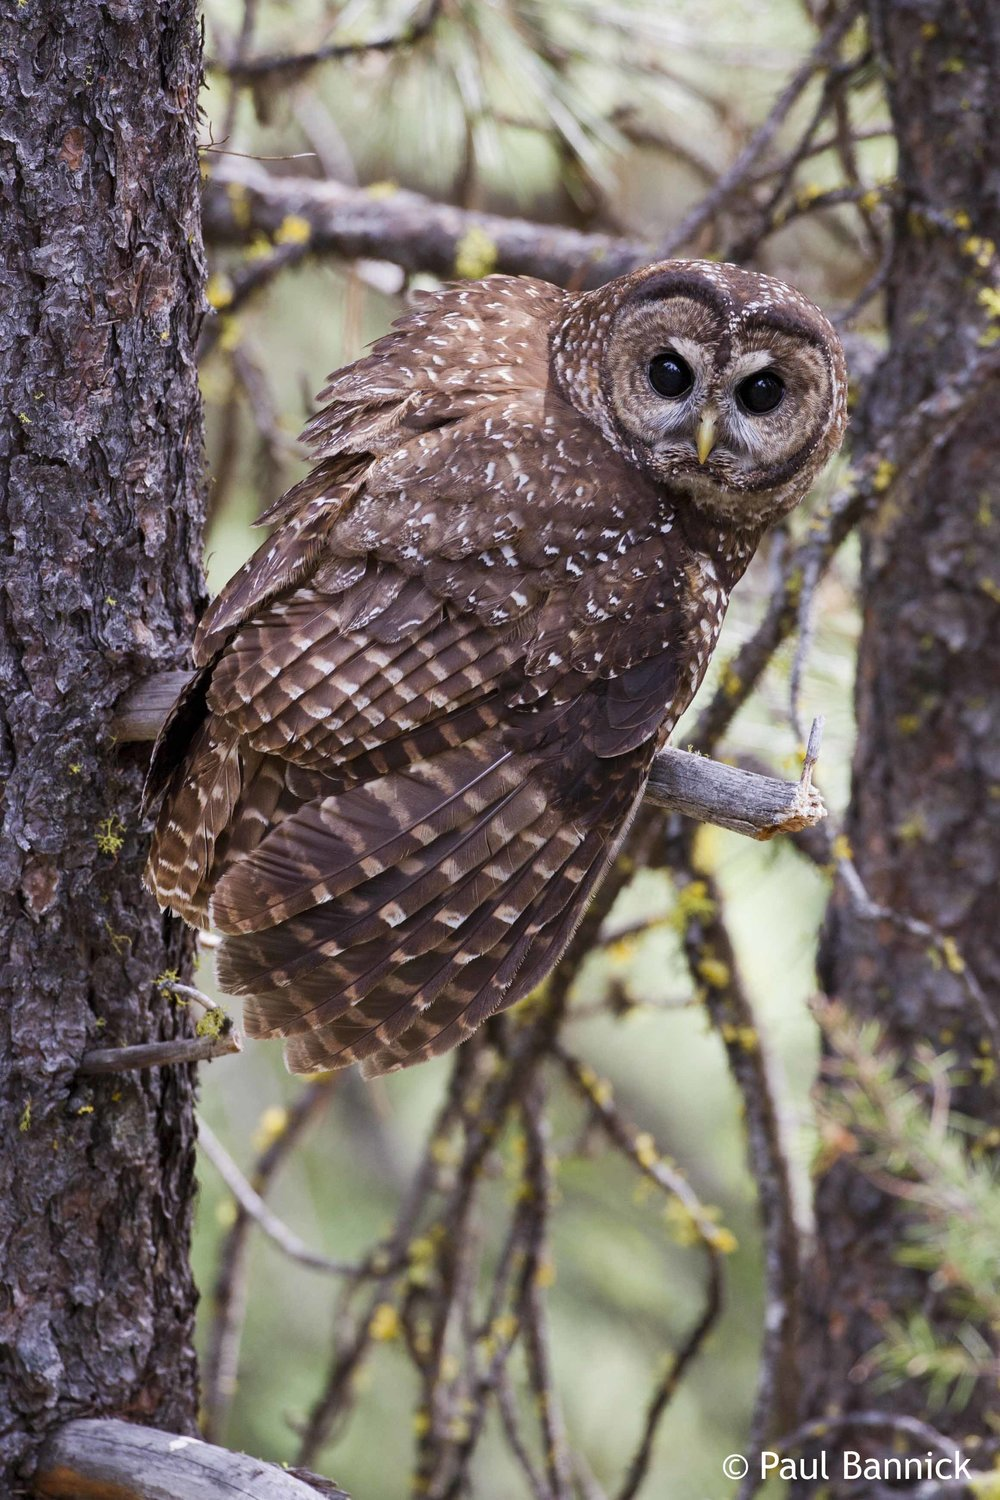 20080626_Bannick_Northern_Spotted_Owl_3708_062608.jpg